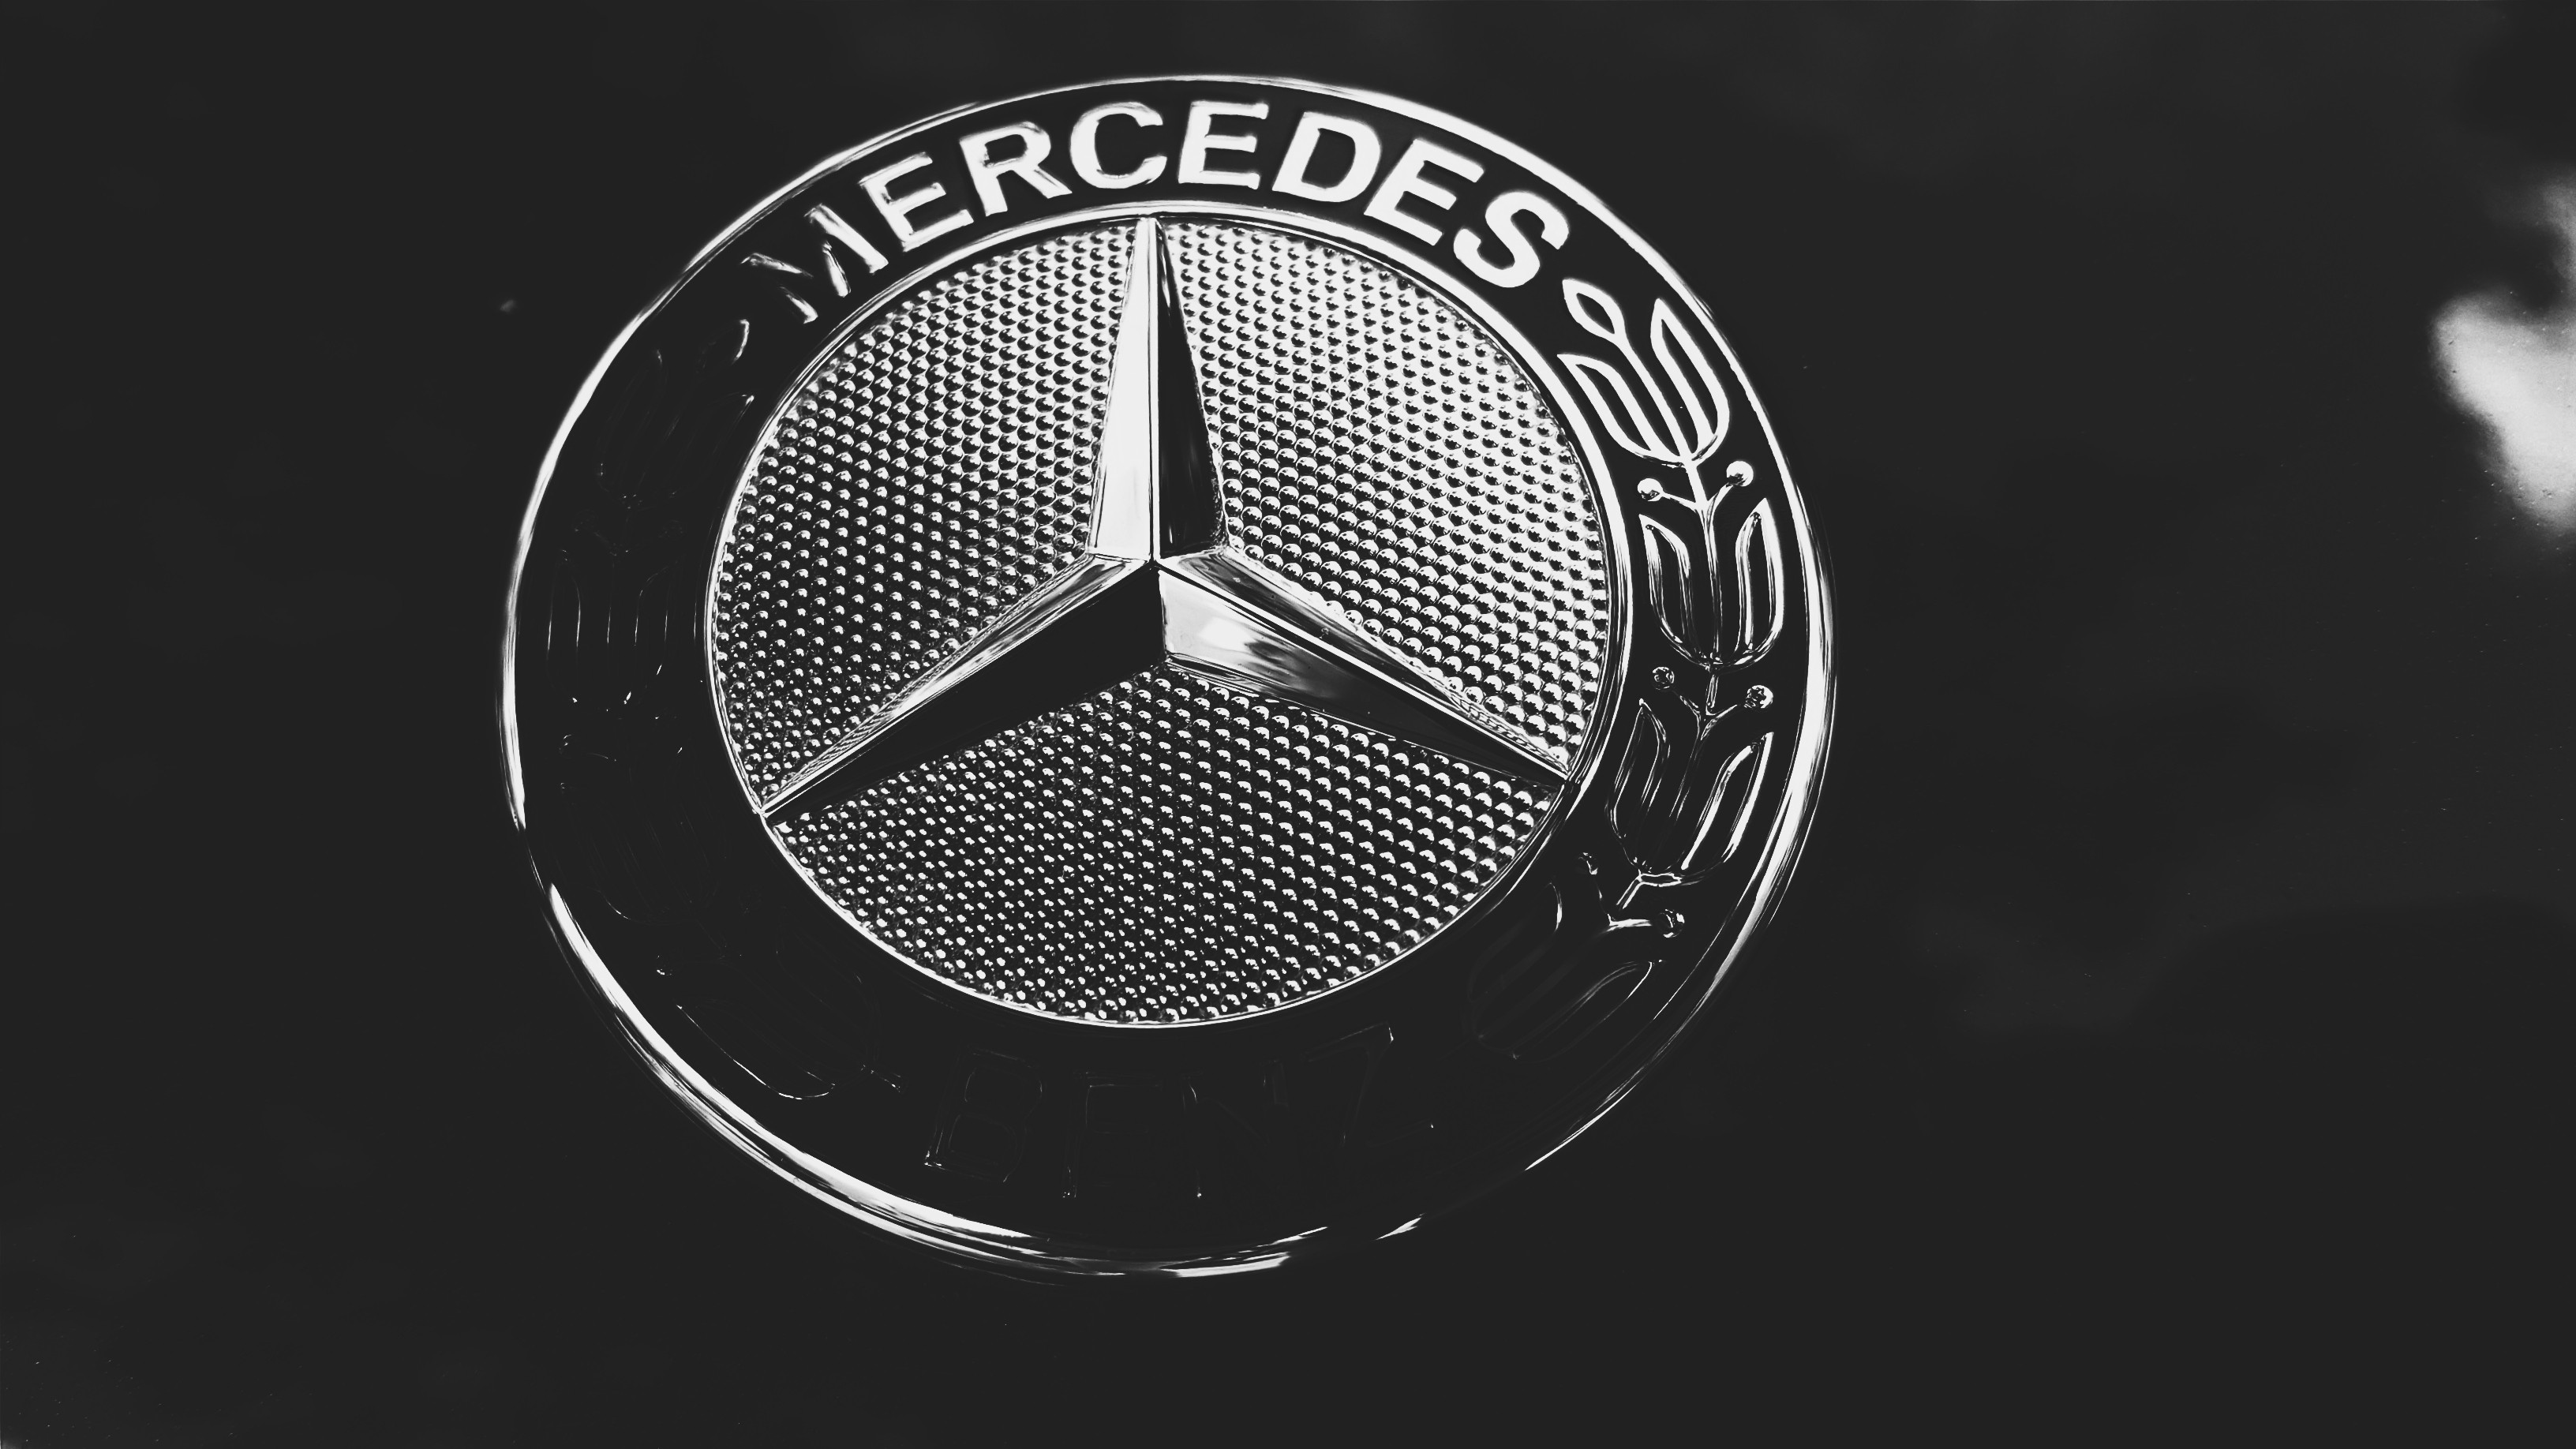 logo Mercedes Benz Wallpapers HD Desktop and Mobile 3264x1836